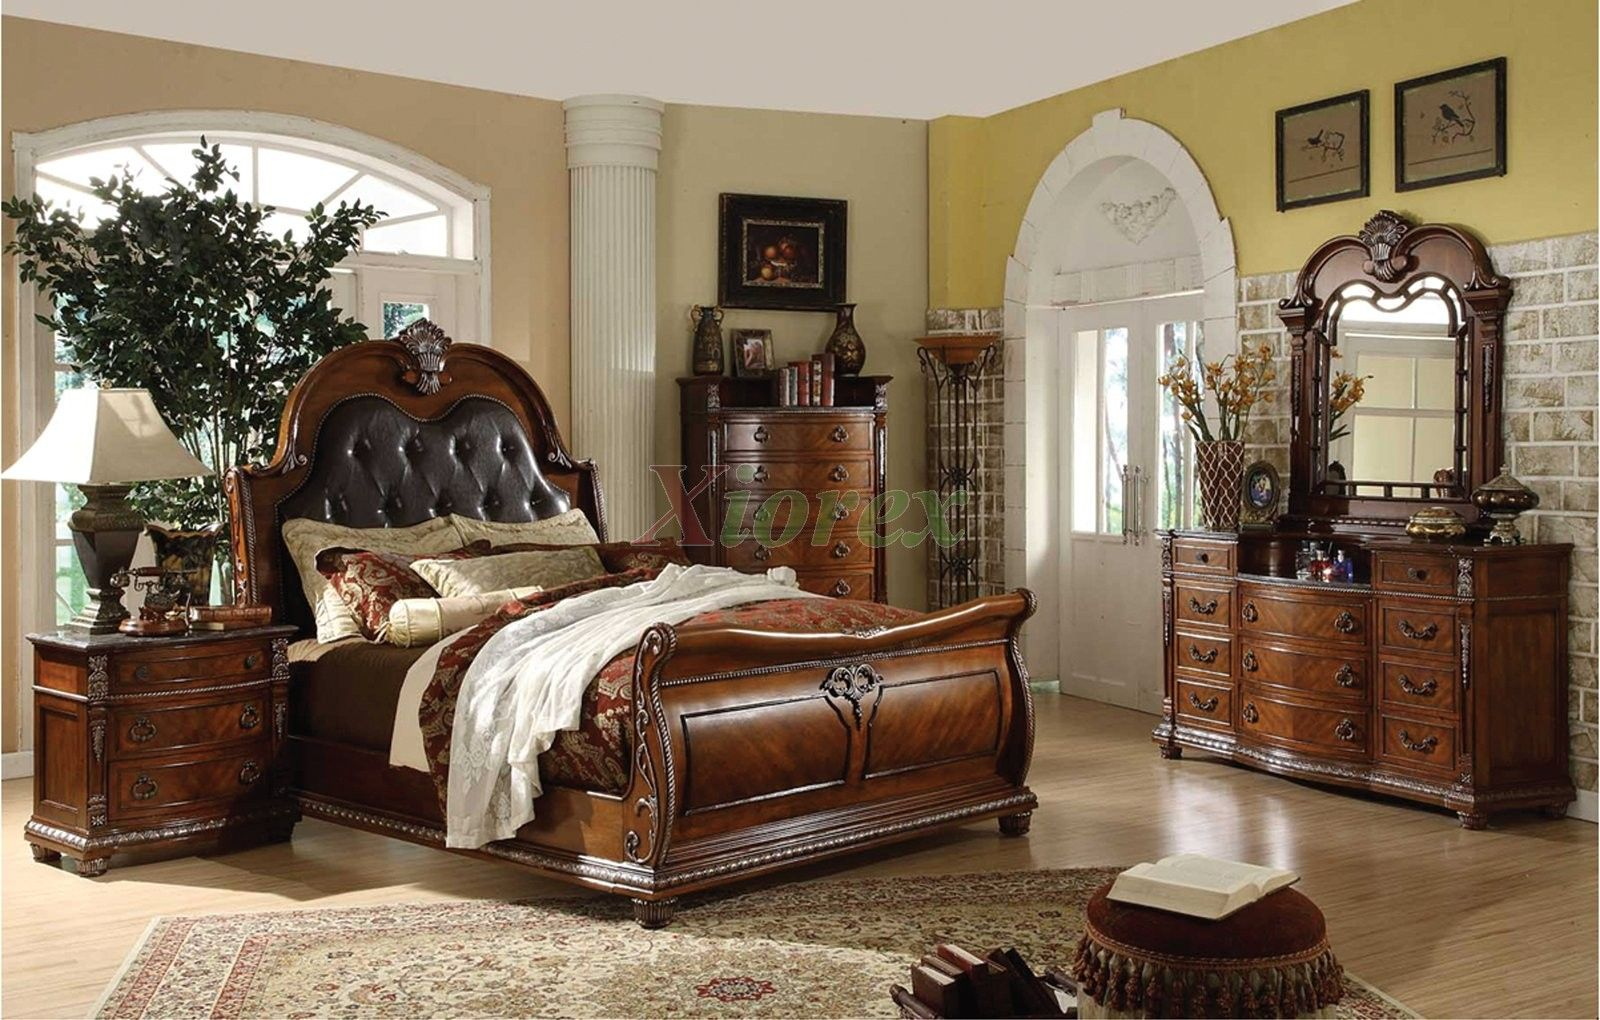 Exceptionnel Sleigh Bedroom Set With Sleigh Queen Bed And Sleigh King Bed 106 Traditional  Bedroom Furniture Set With Leather Headboard Beds